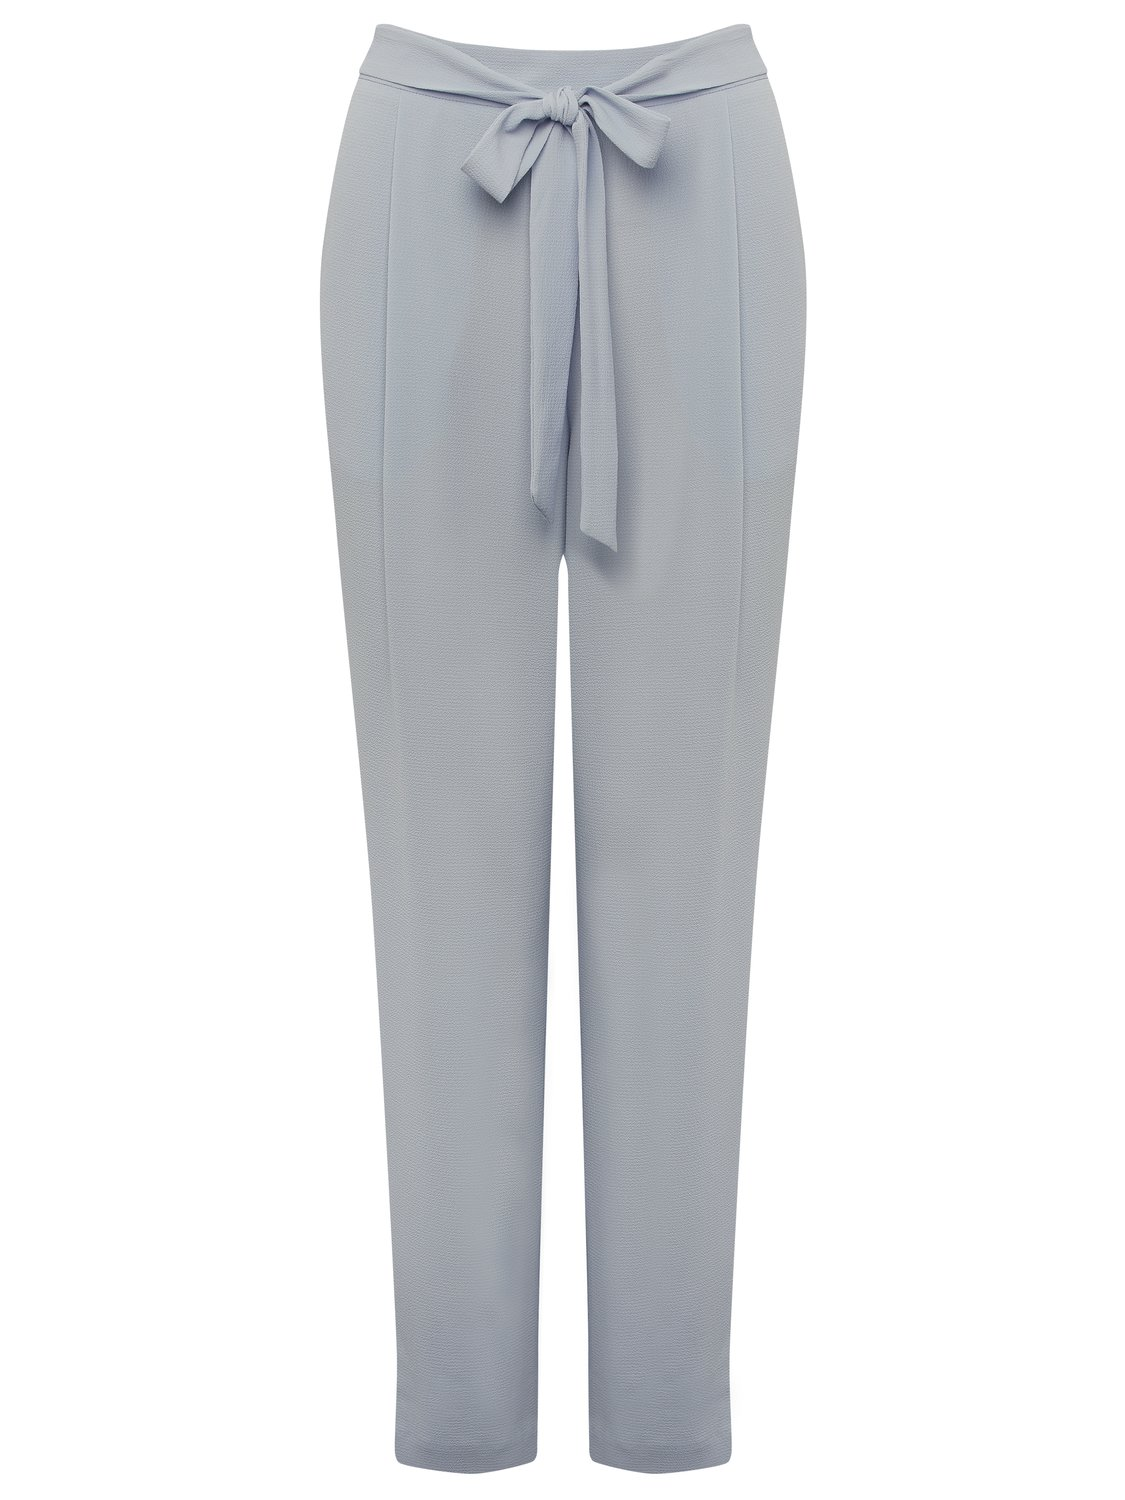 women's ladies crepe tie waist trousers relaxed tapered leg high waist pockets